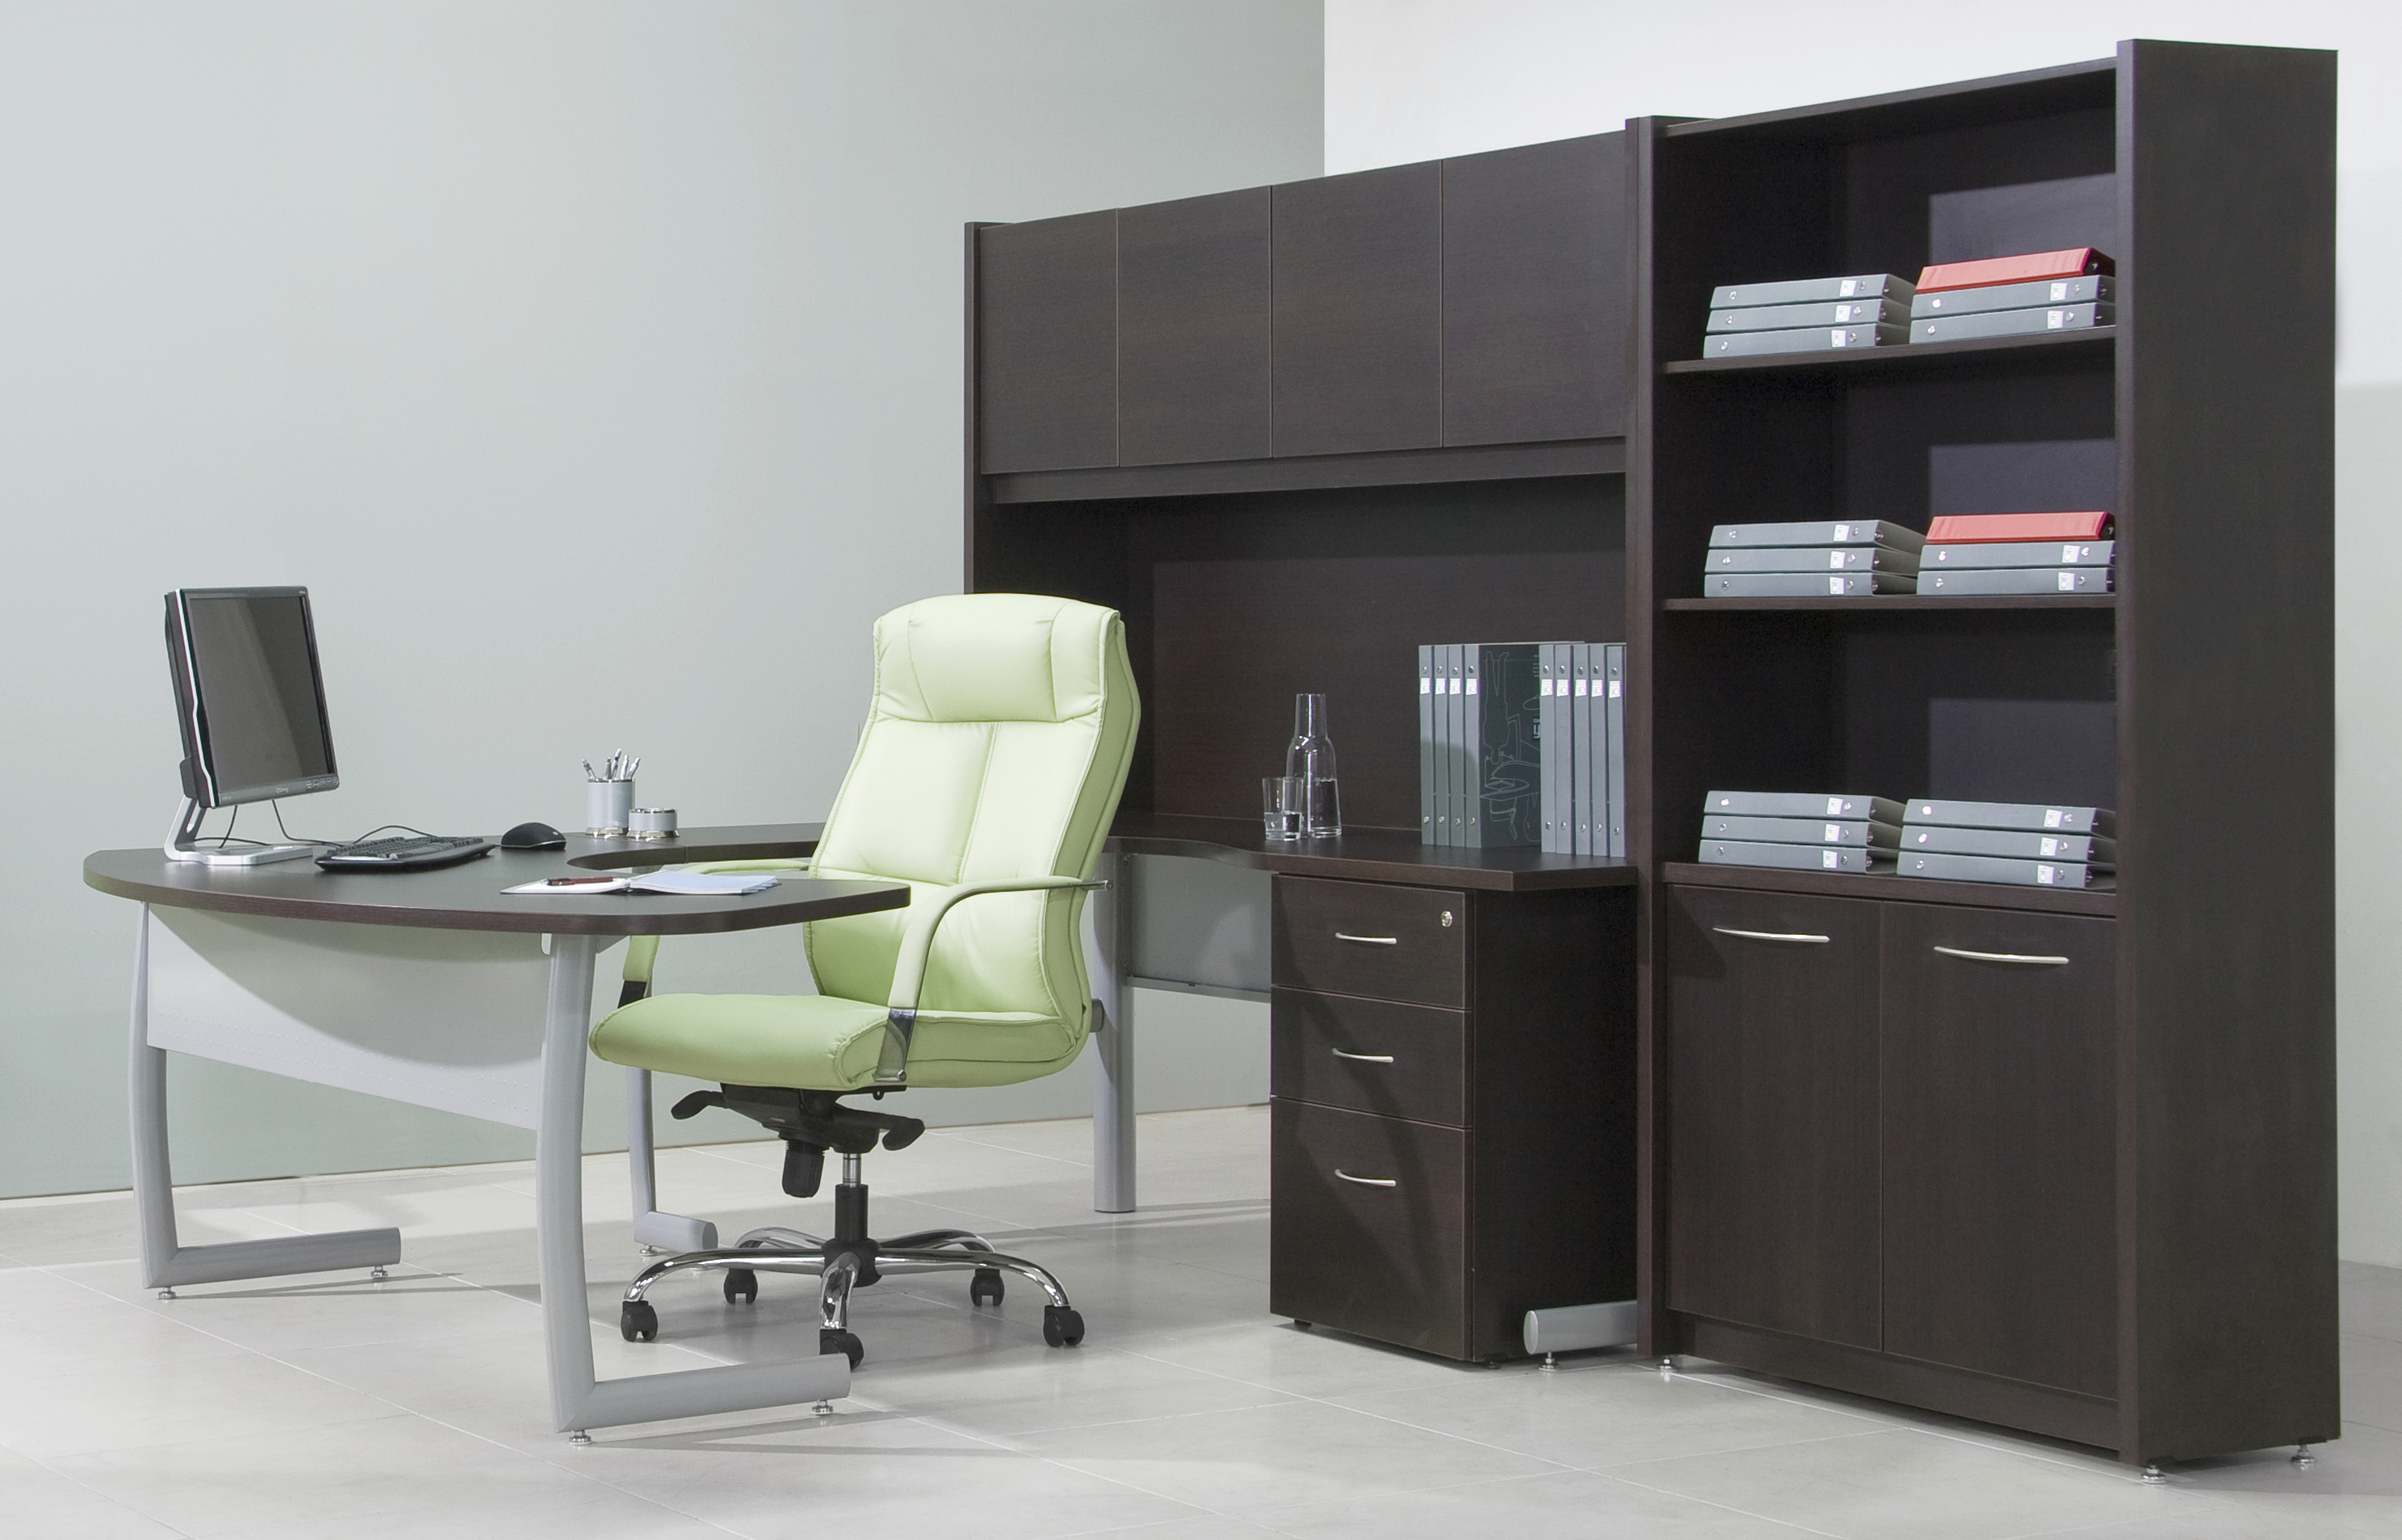 Muebles De Oficina Outlet Madys Interiores